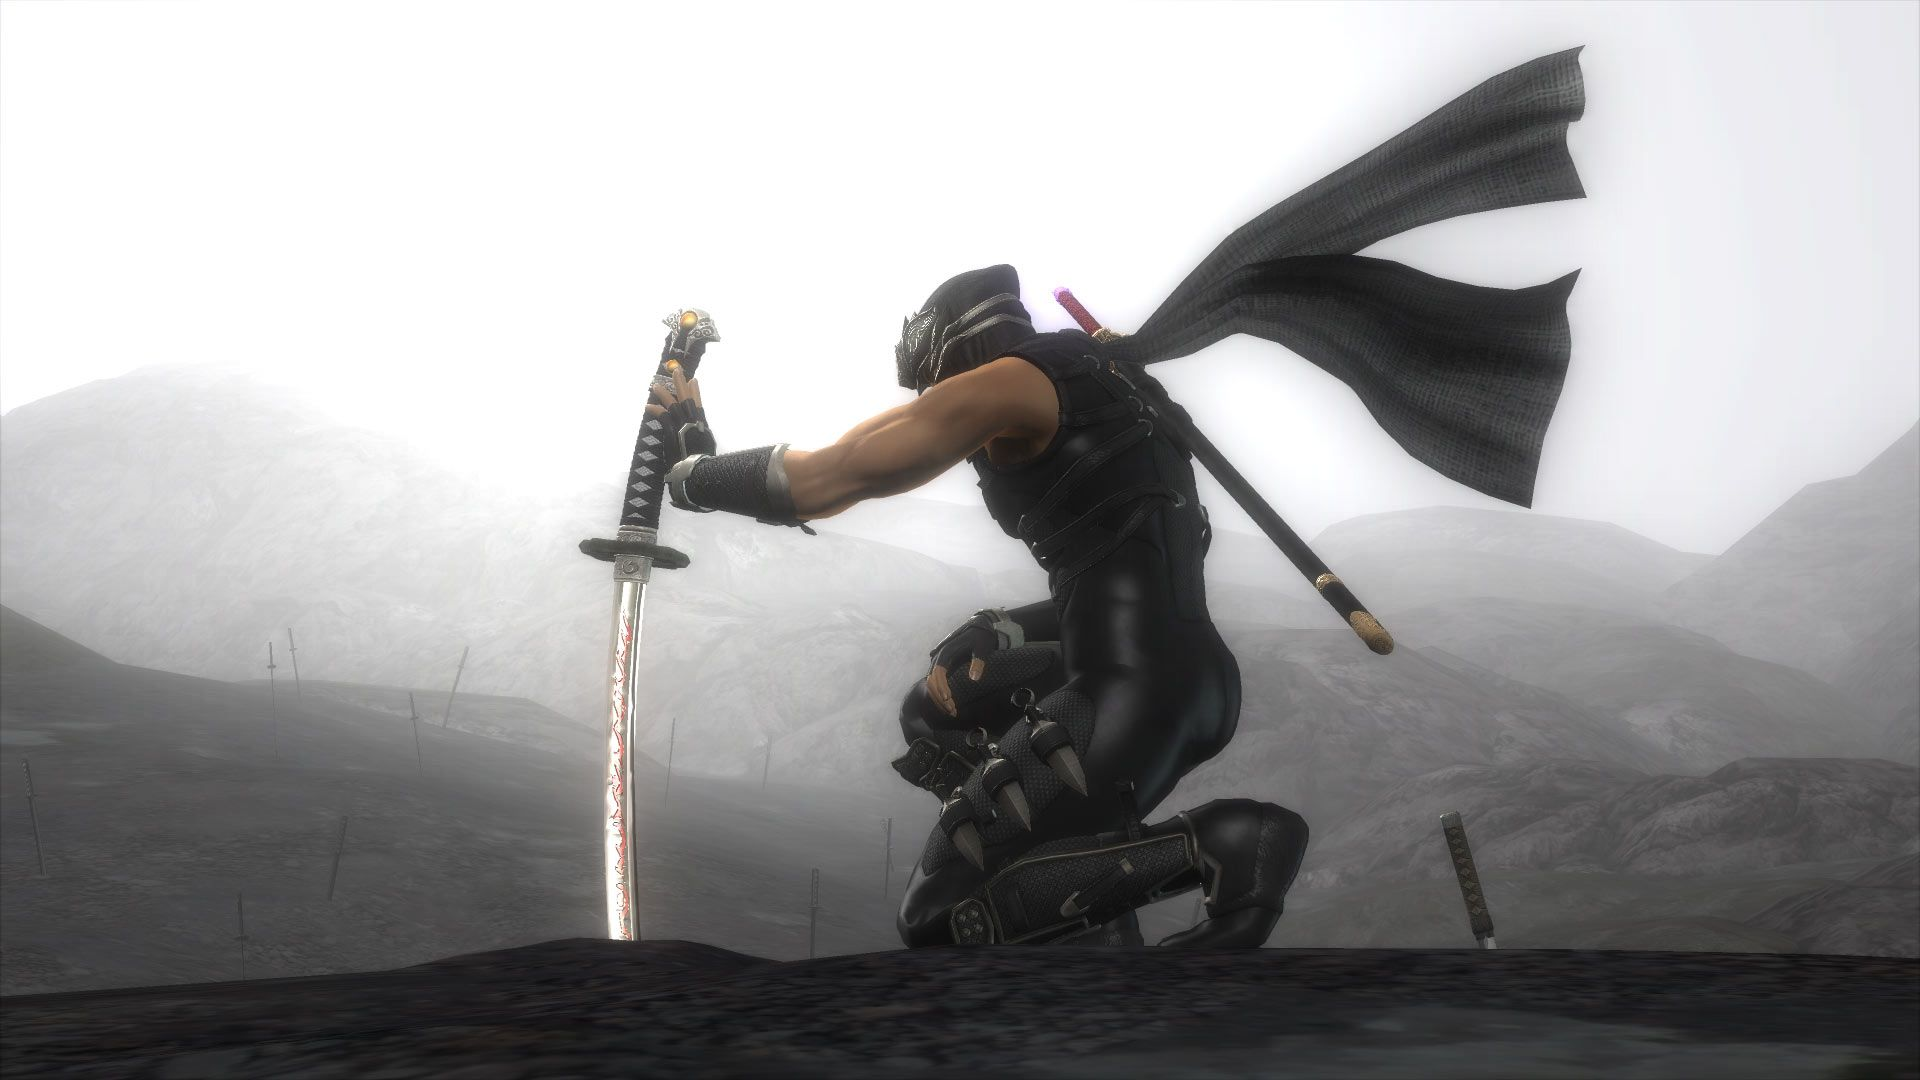 ninja gaiden 2 xbox 360 walkthrough